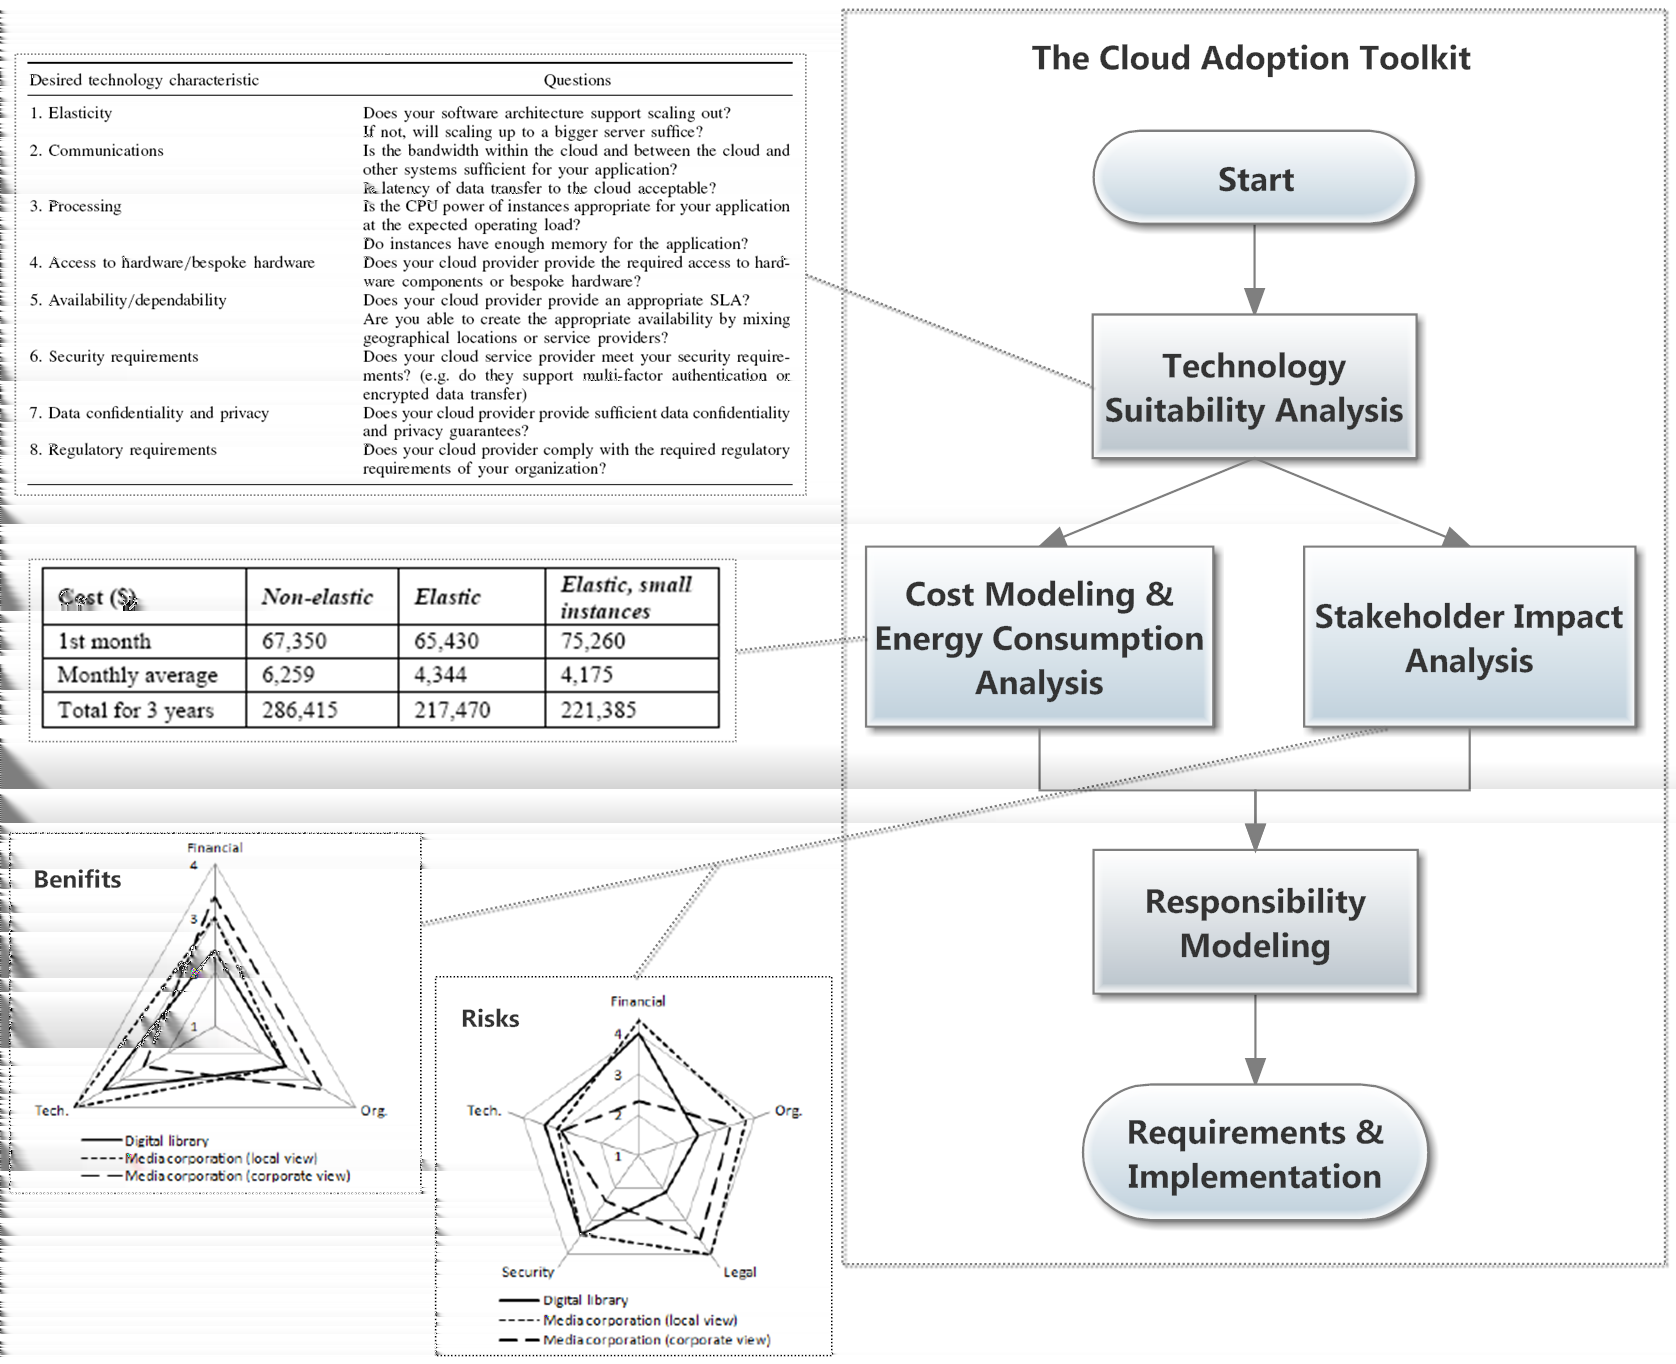 2 Background identify and analyze risks, and to check the operational viability of the complex IT system. And the last step is to complete the Requirements & Implementation of the system on the Cloud.